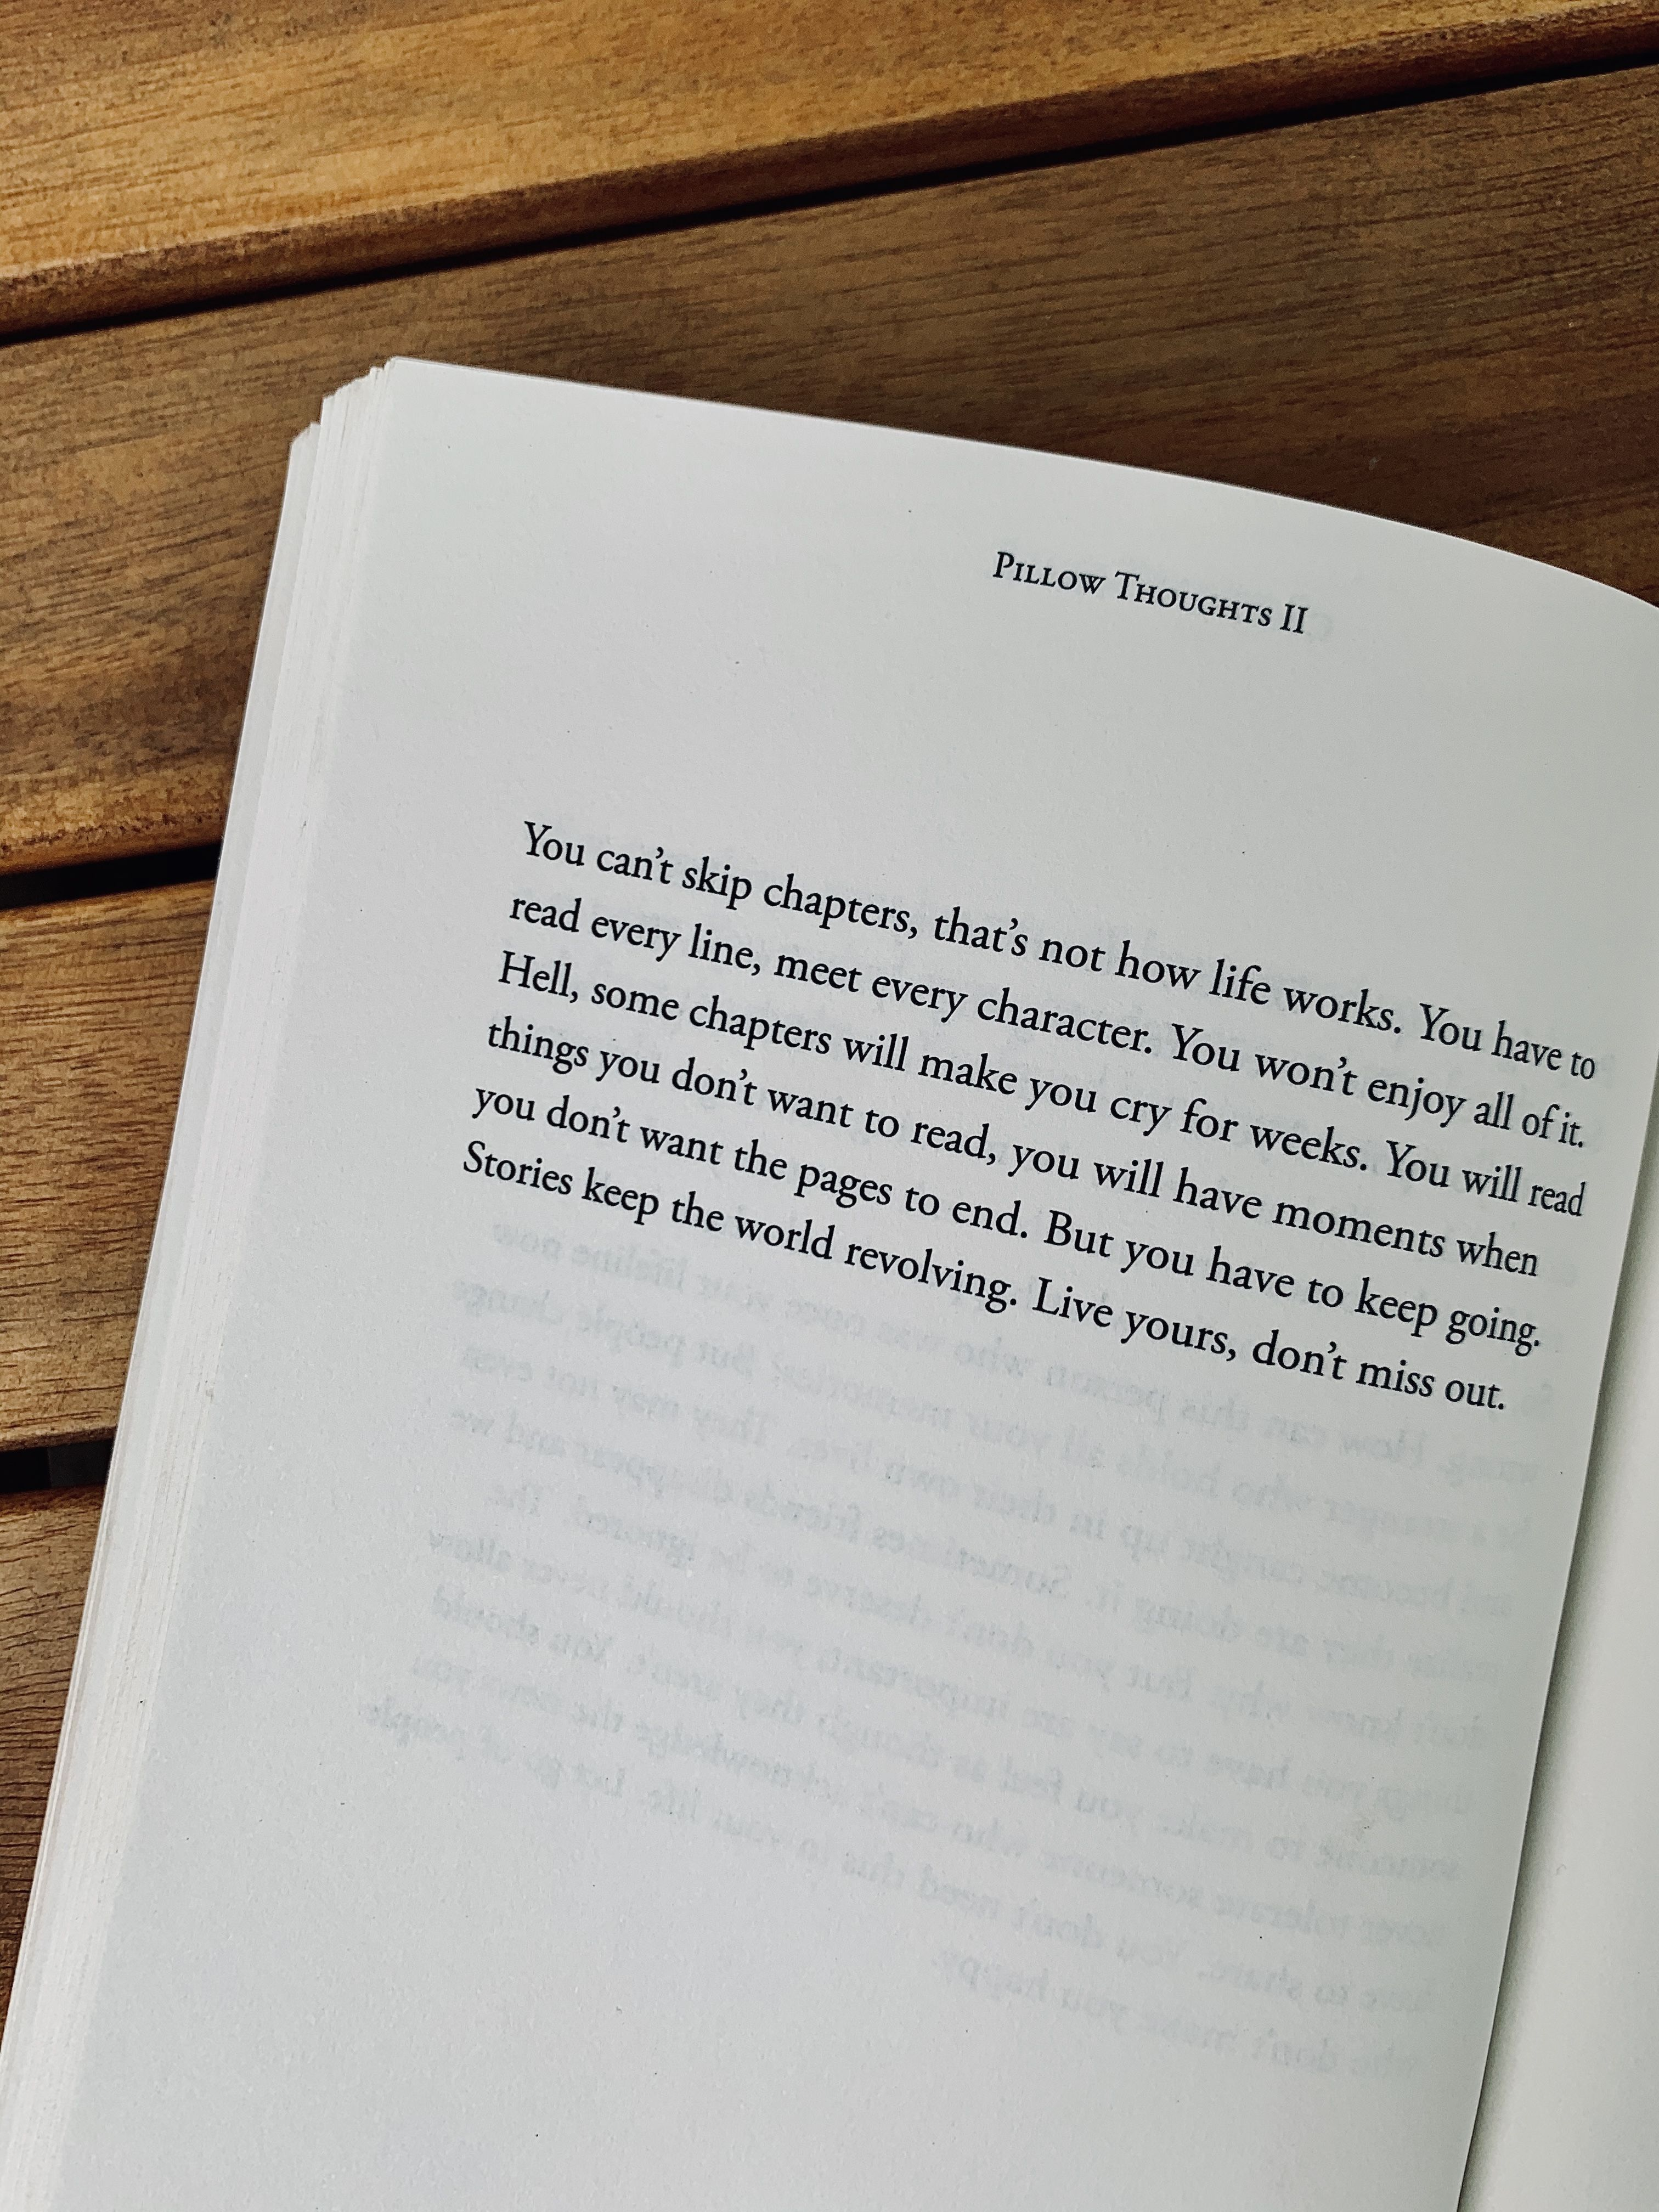 pillow thoughts ii pillow thoughts